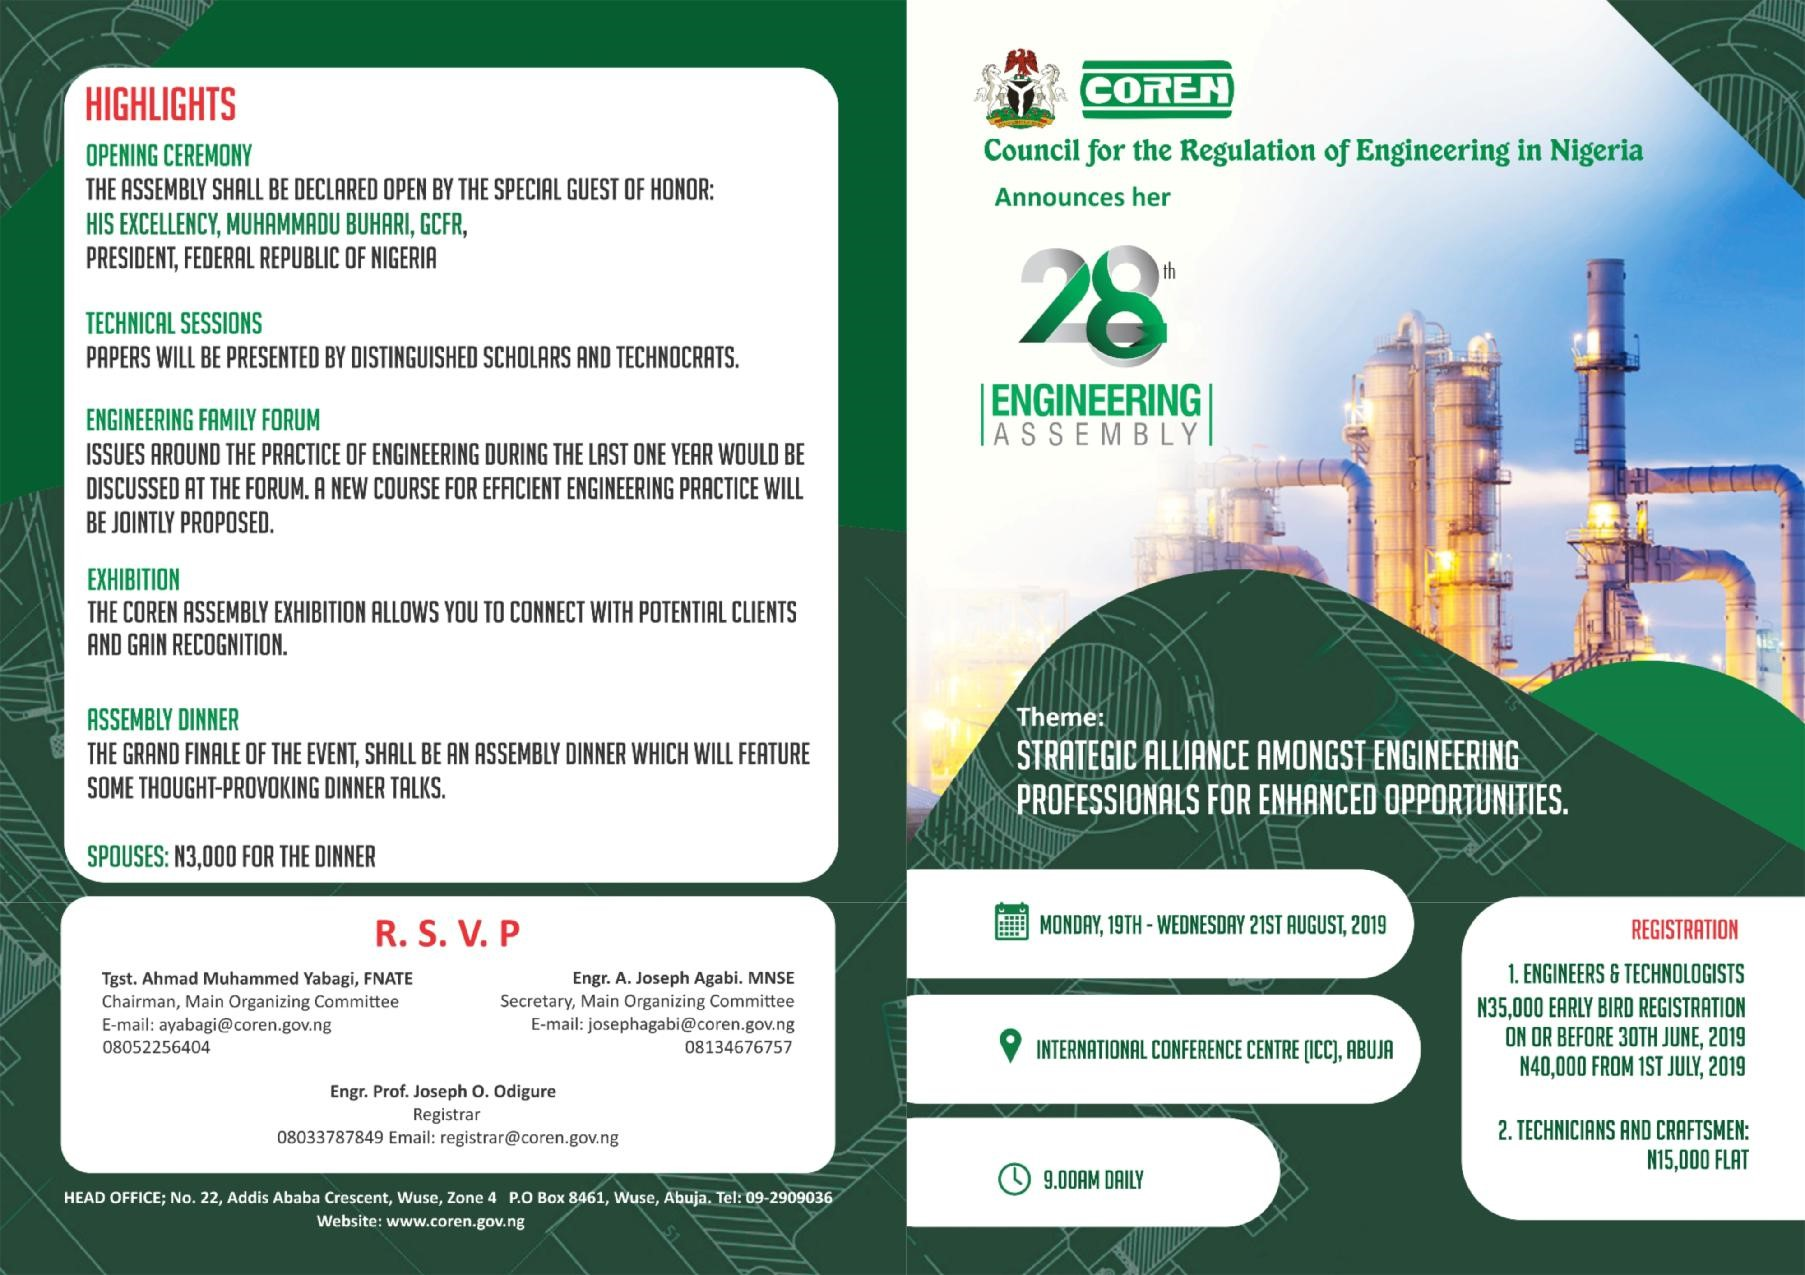 Council for the Regulation of Engineering in Nigeria - HOME